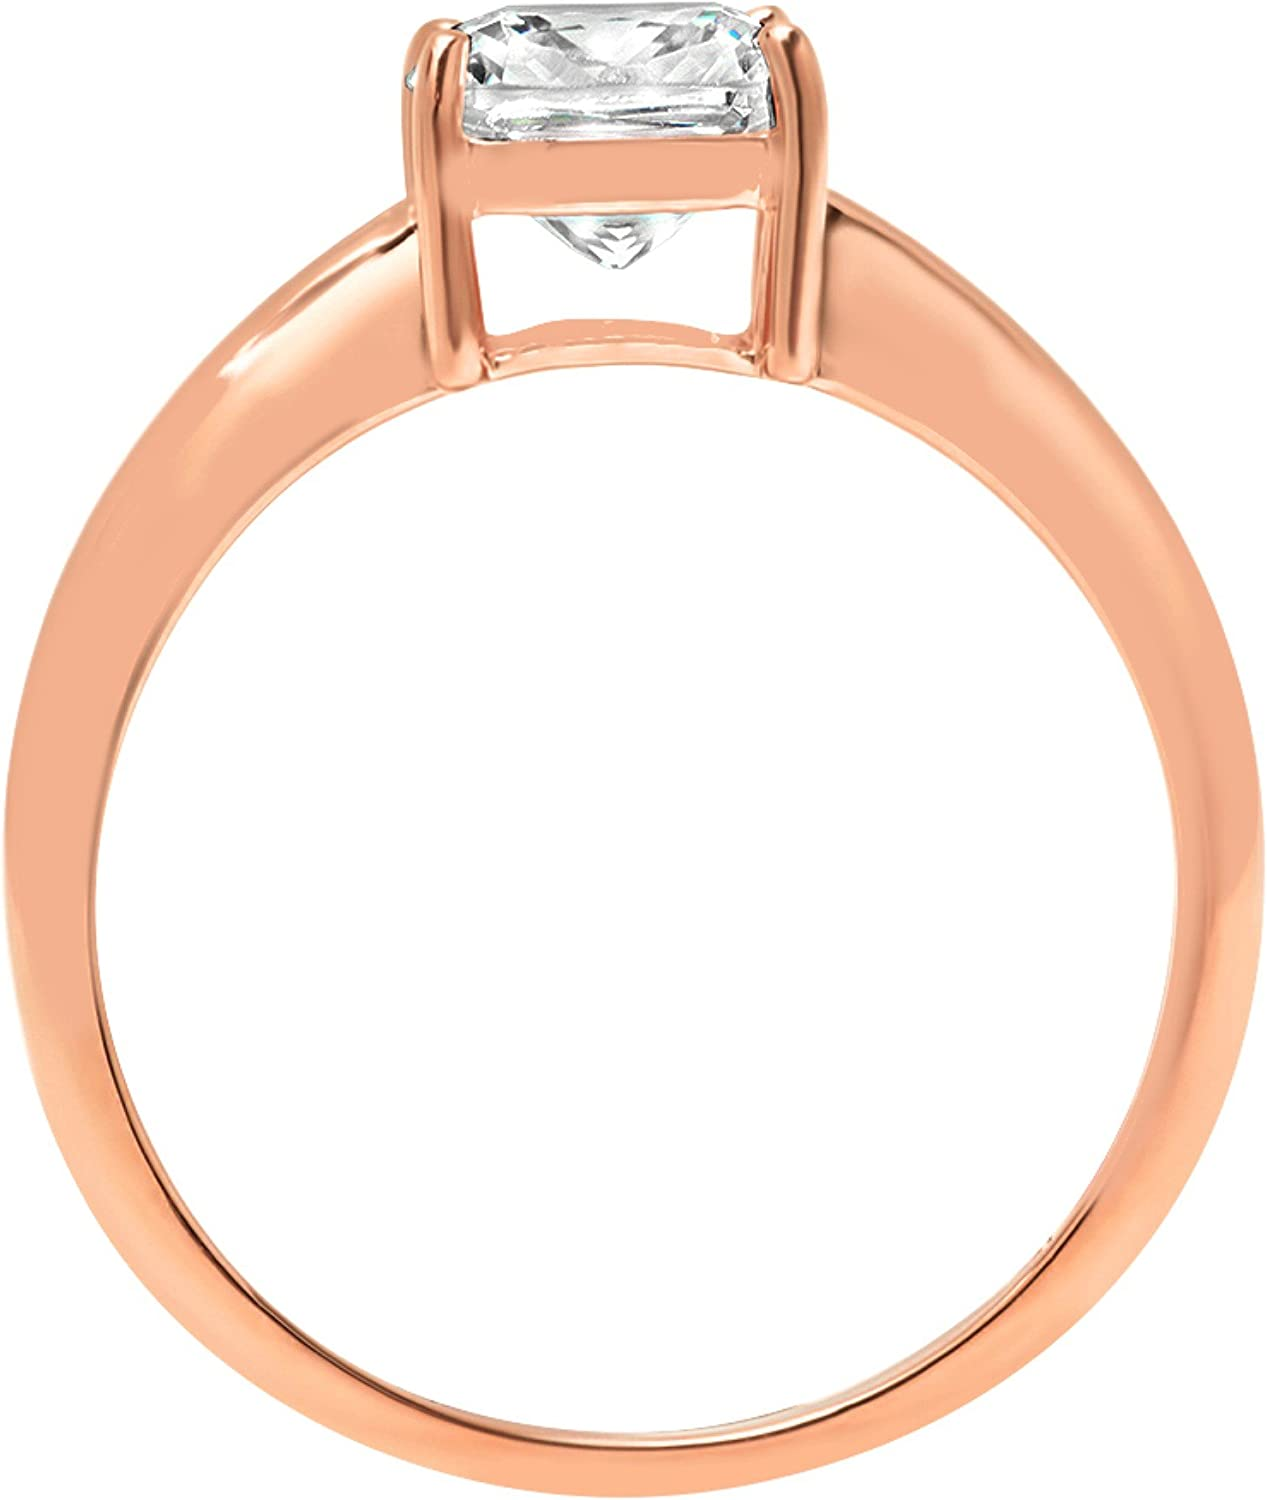 14k Rose Gold 1.47cttw Classic Cushion Classic Solitaire Moissanite Engagement Promise Ring Statement Anniversary Bridal Wedding by Clara Pucci